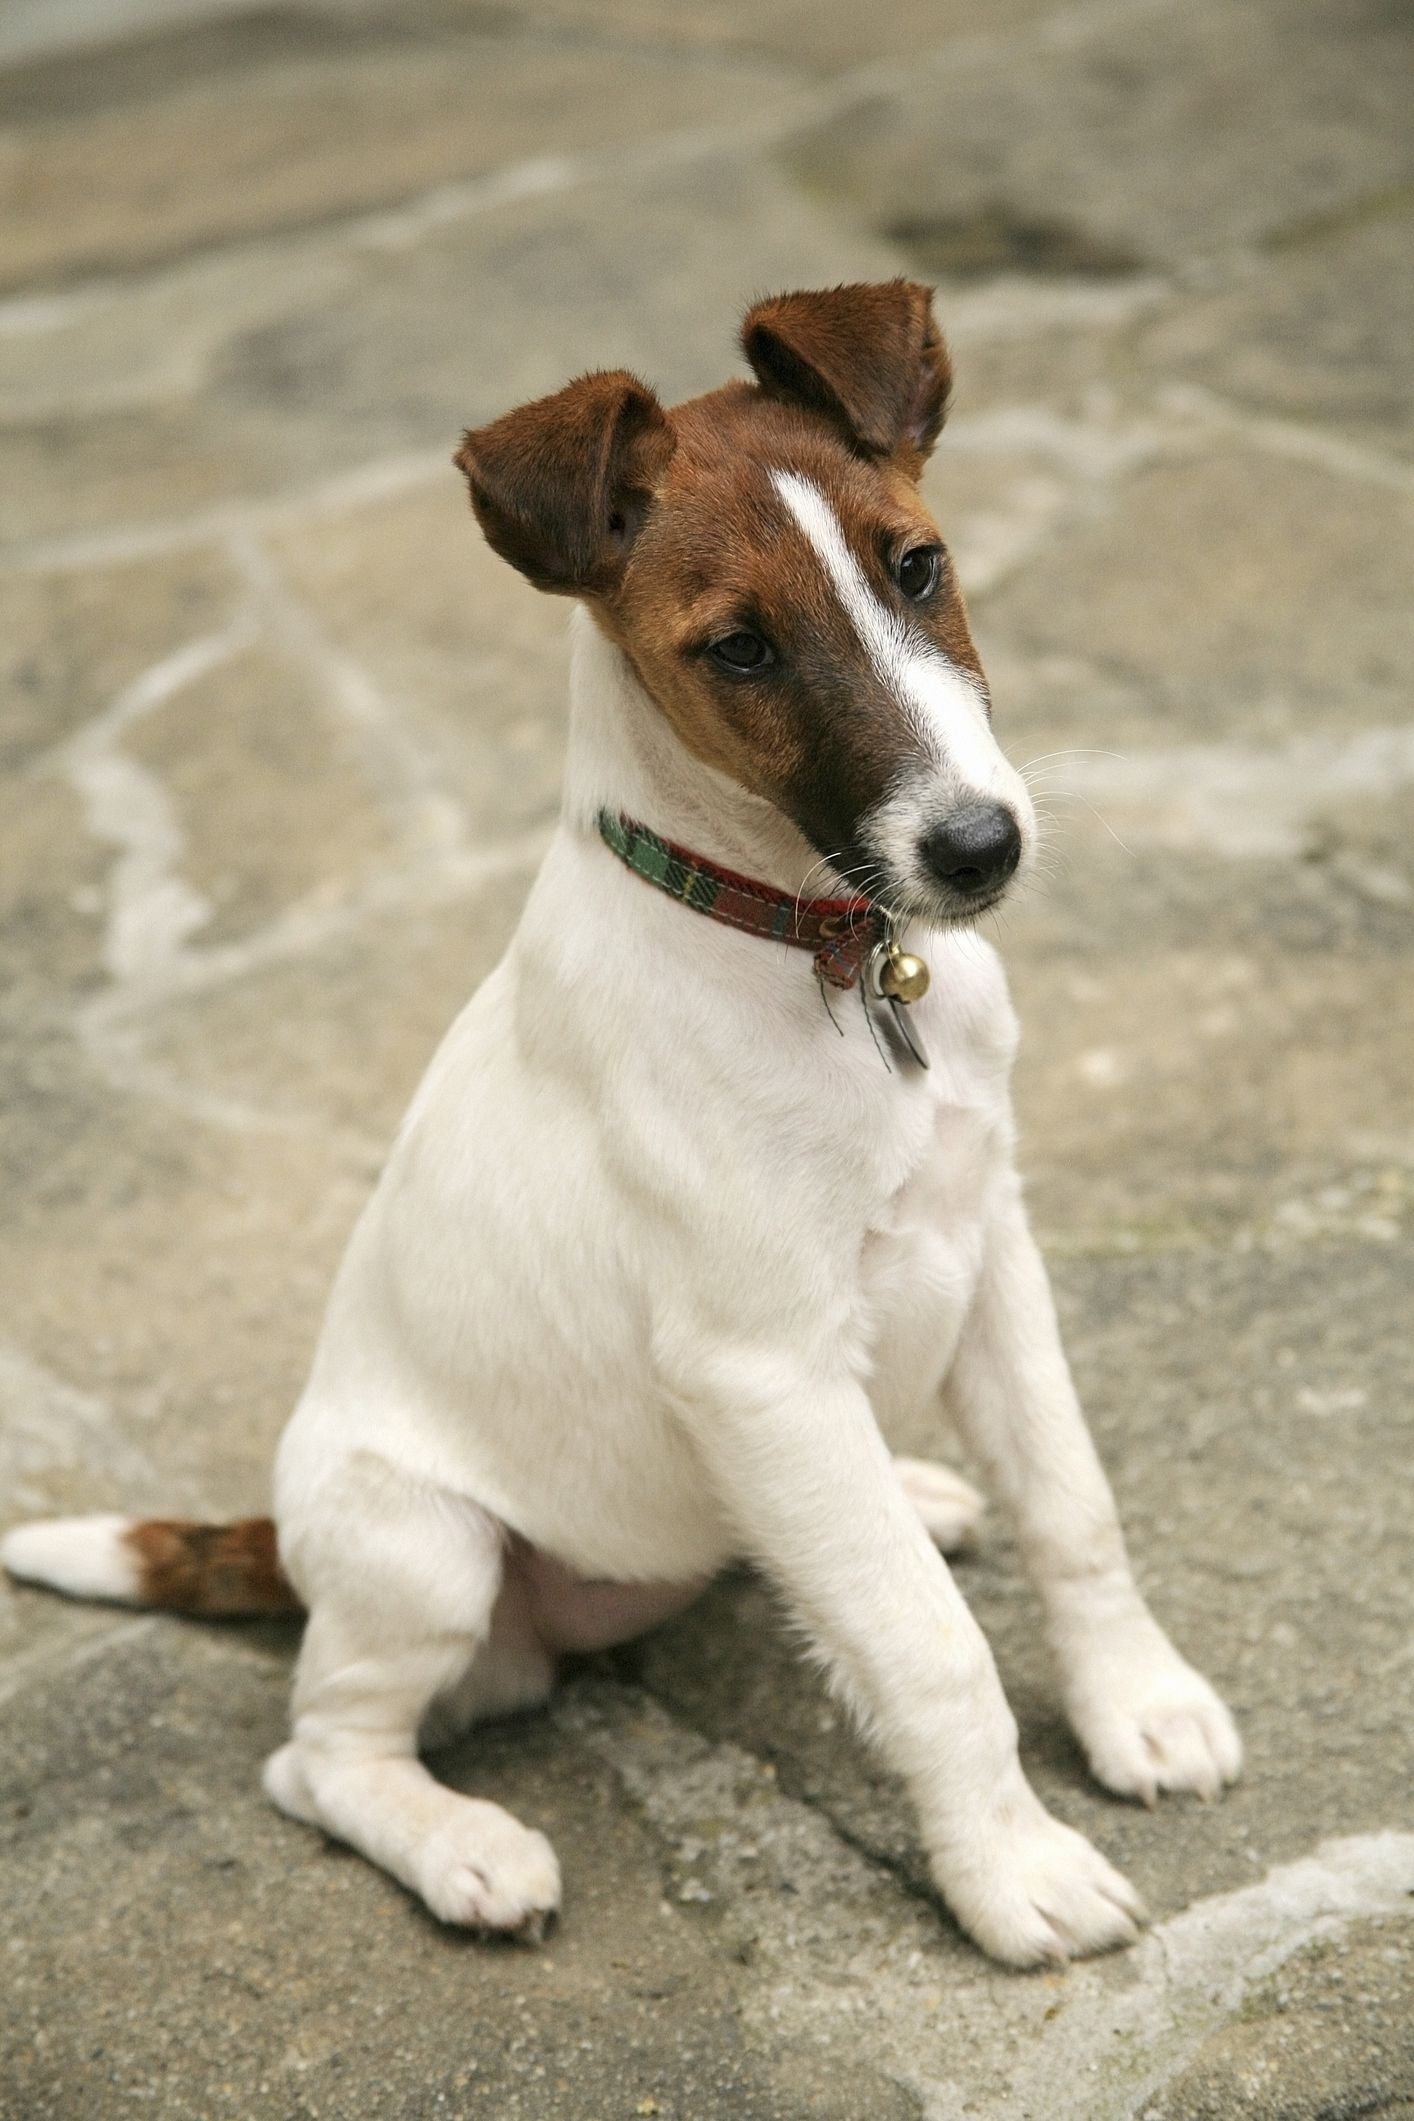 35 Best Small Dog Breeds - List of Top Small Dogs with Pictures